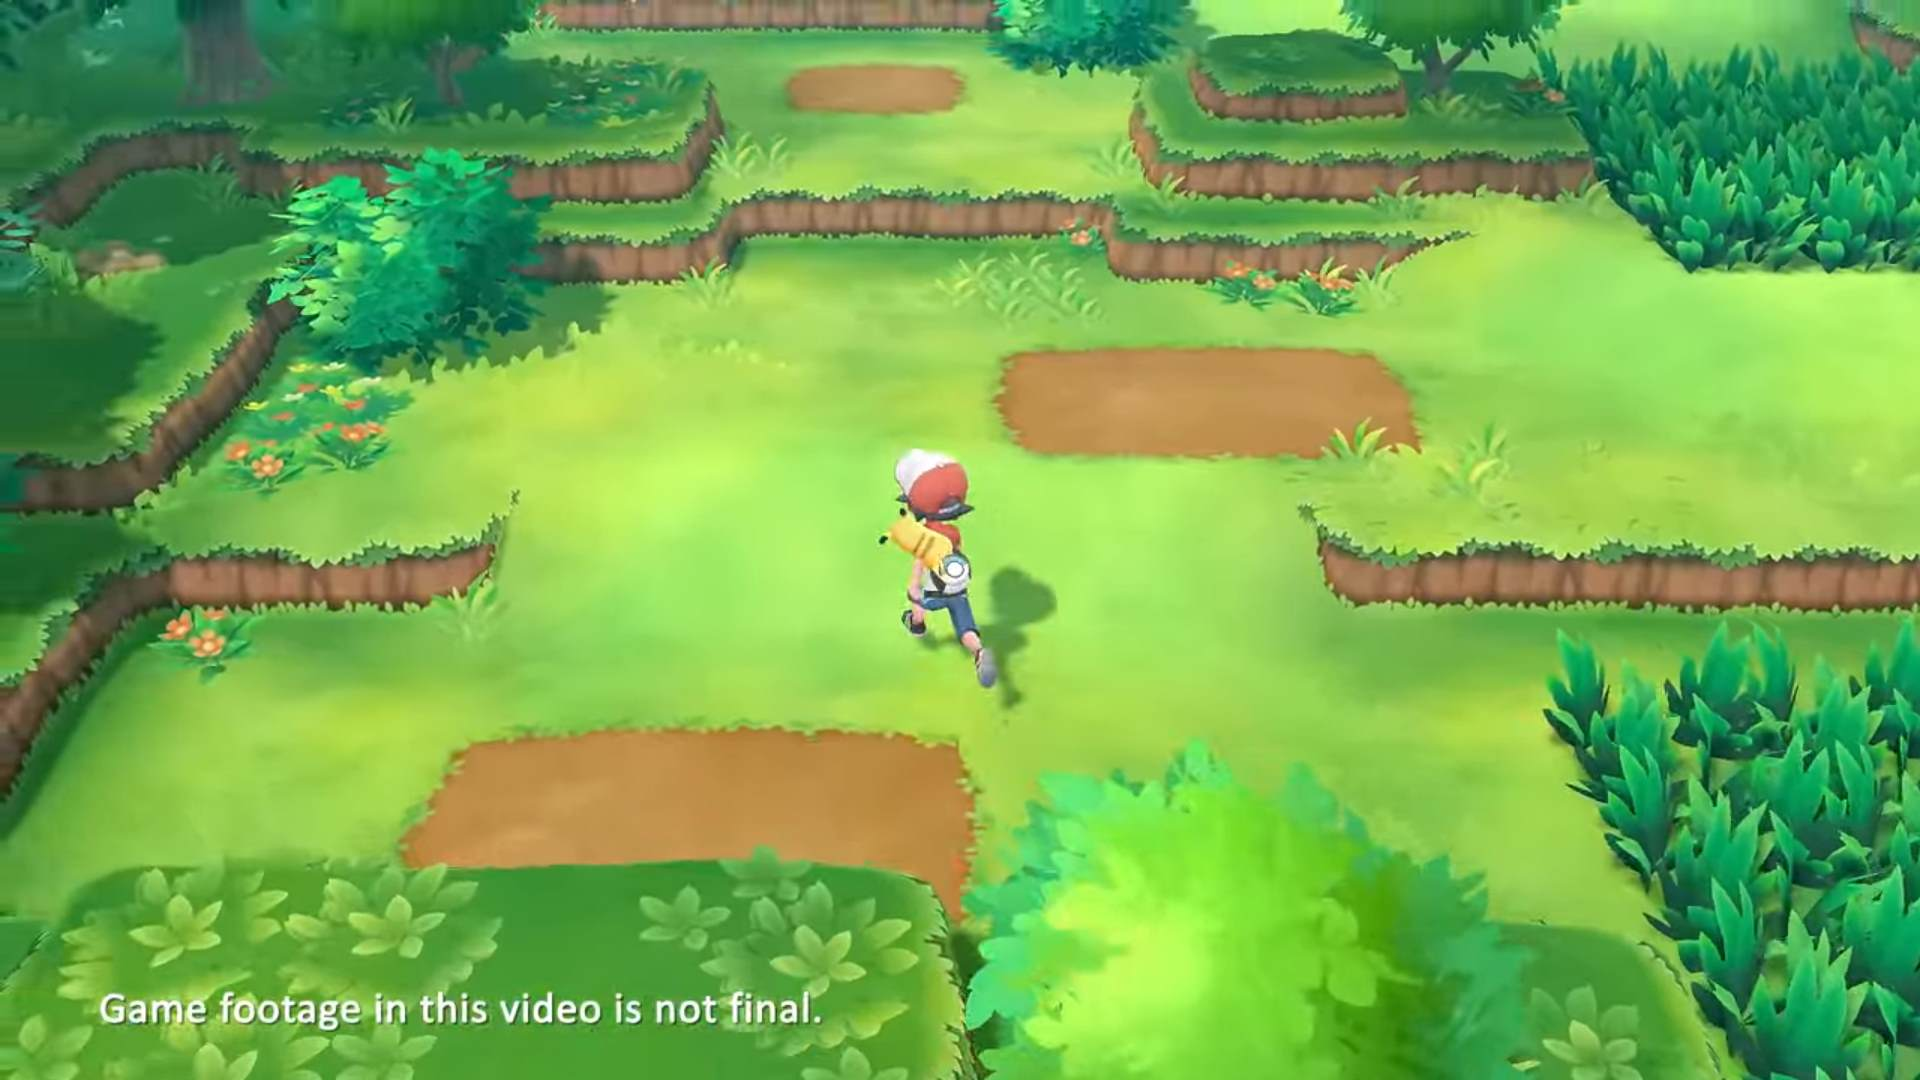 15 Things You Need To Know Before You Buy Pokémon Let's Go